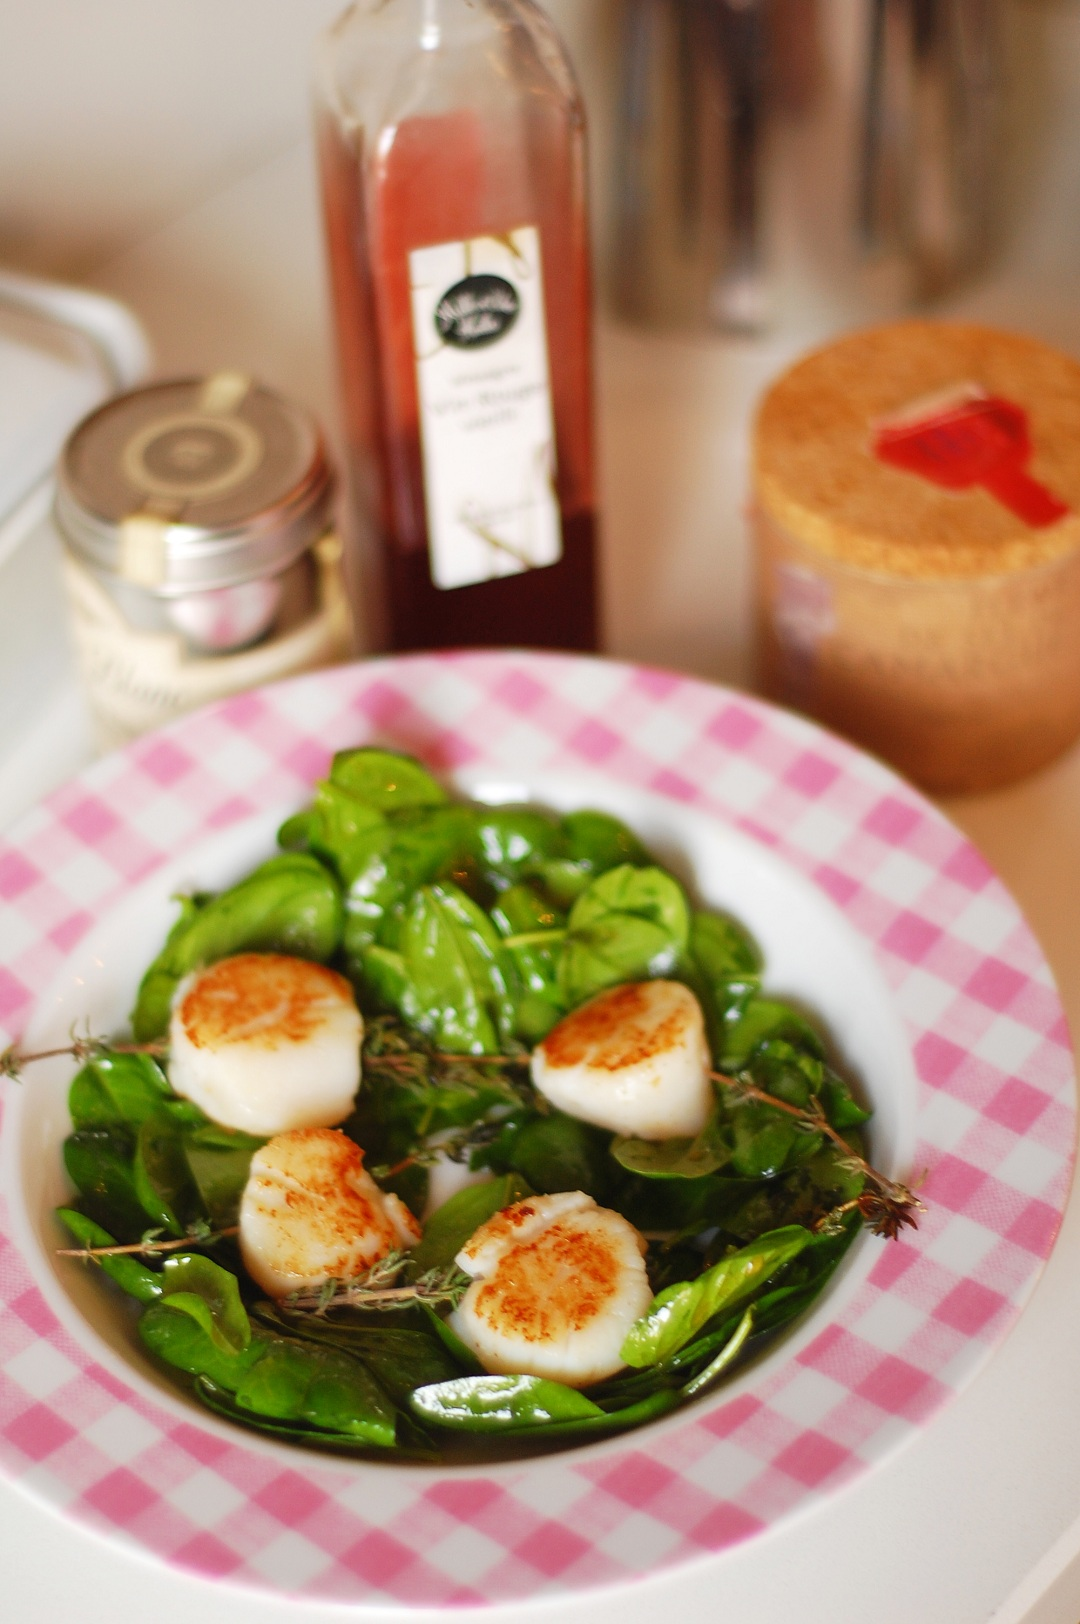 Seared scallops with baby spinach, made at L'atelier Cuisine De Patricia.